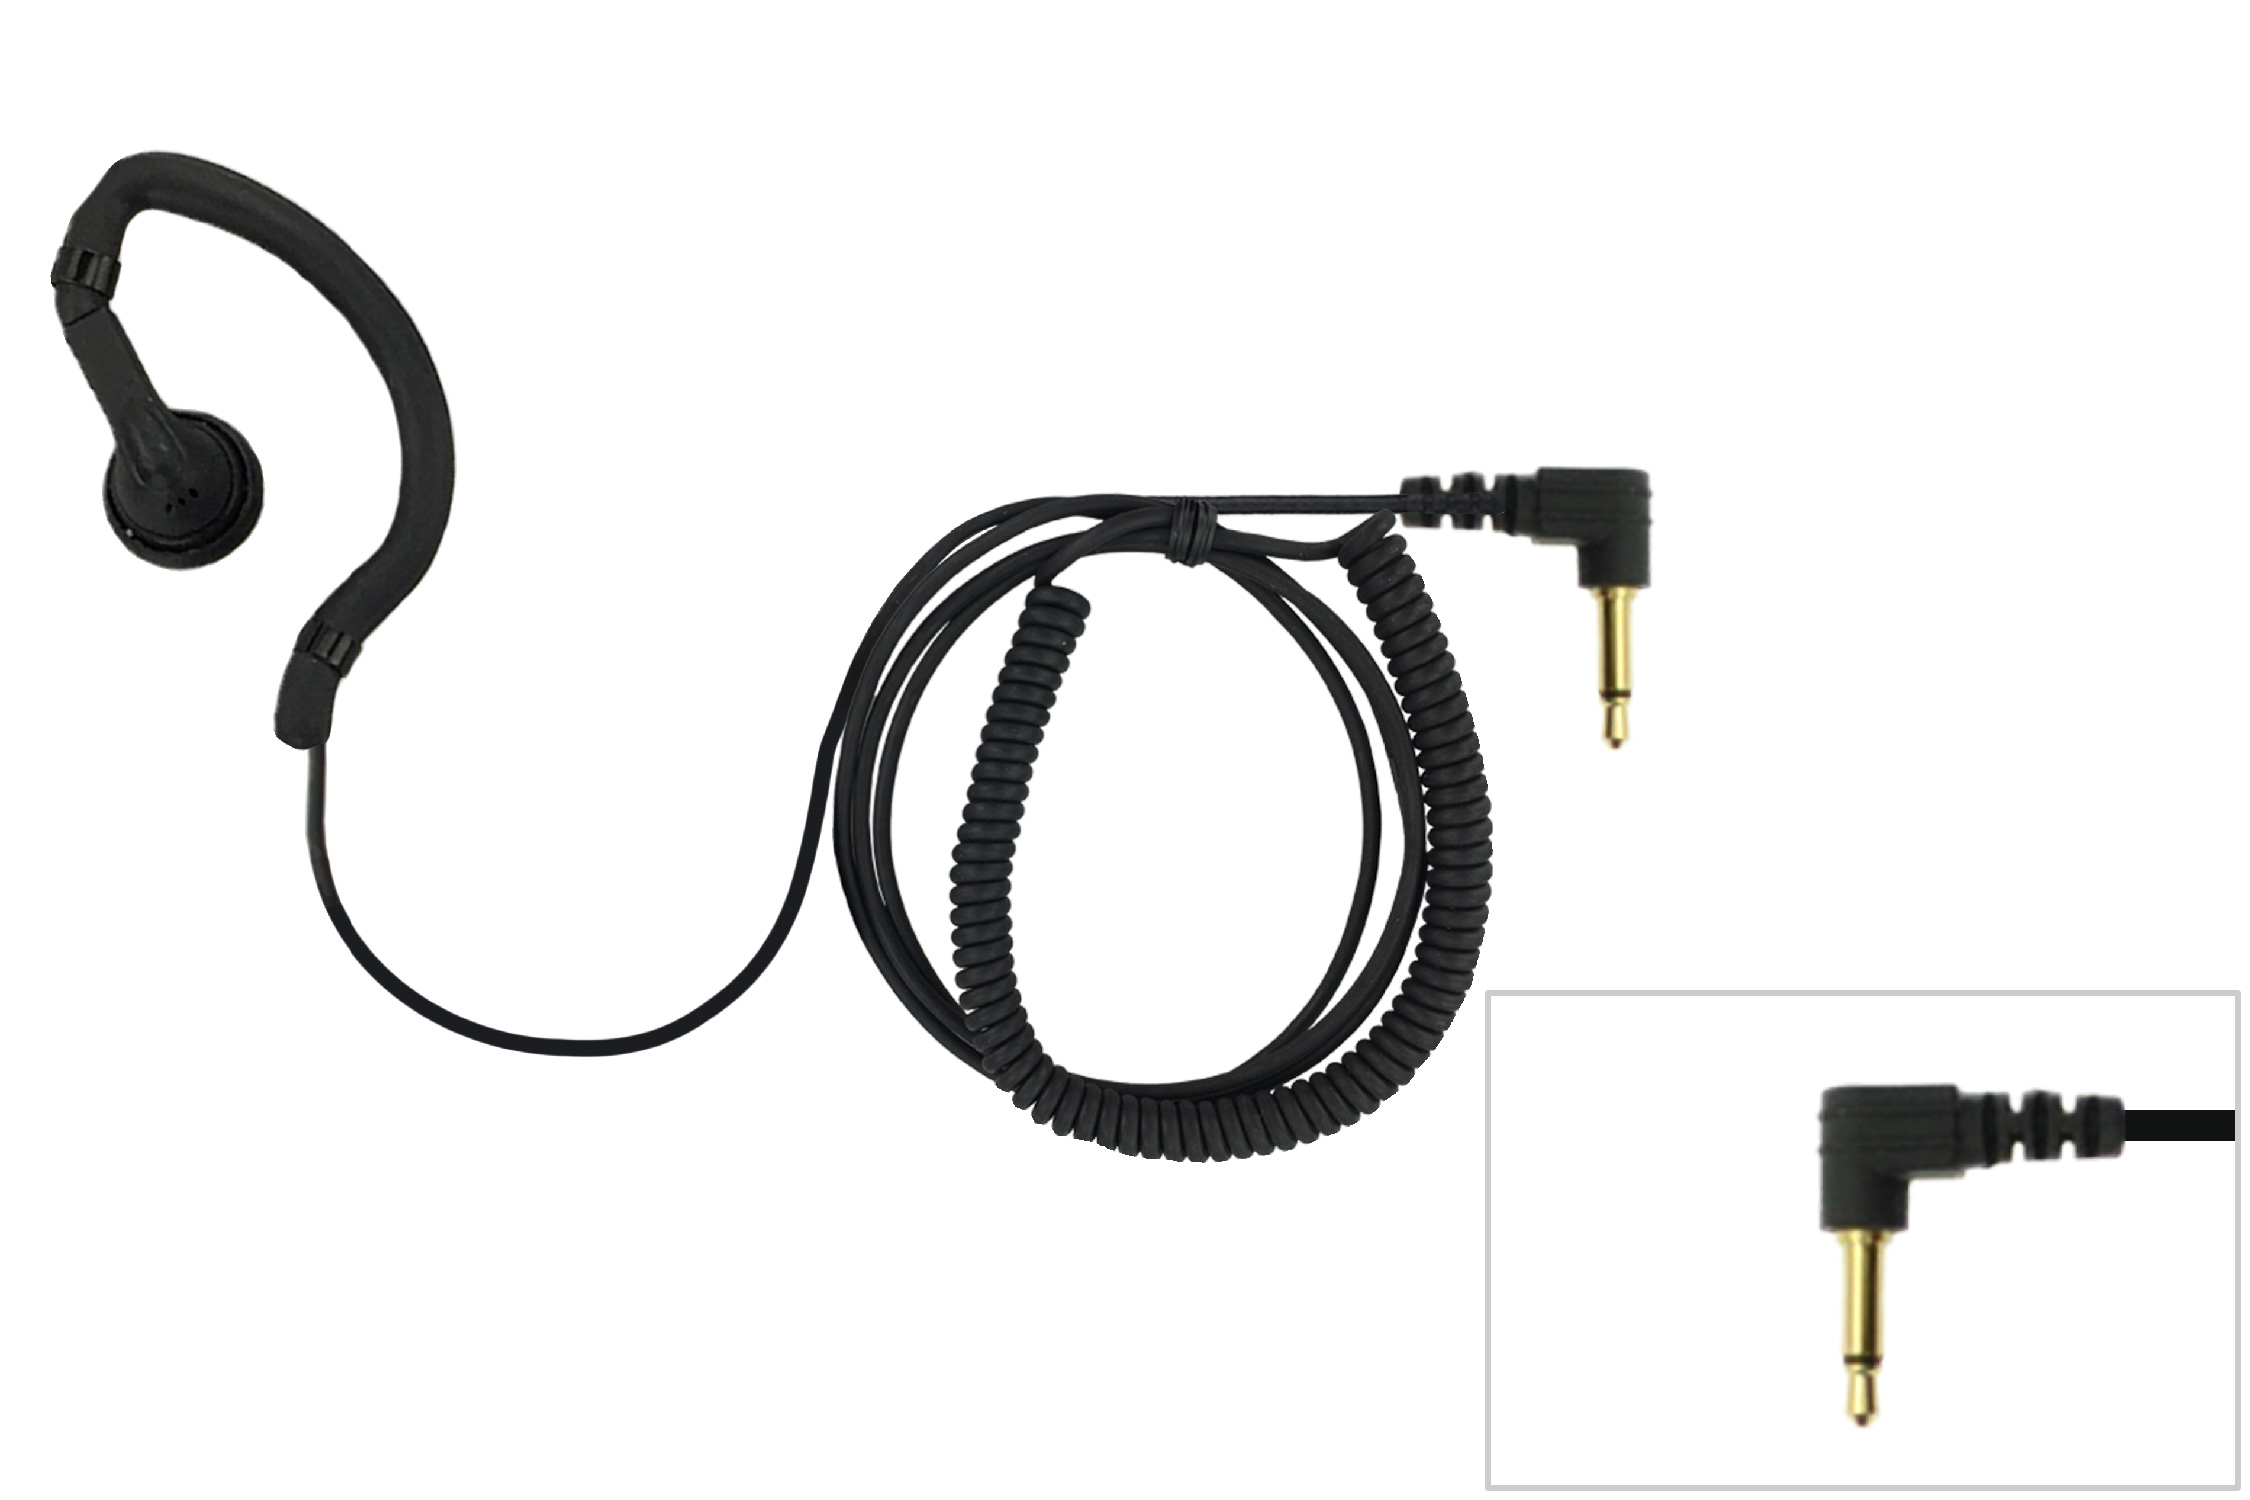 Earbud earpiece for RSM or radio with 3.5mm plug and long cable